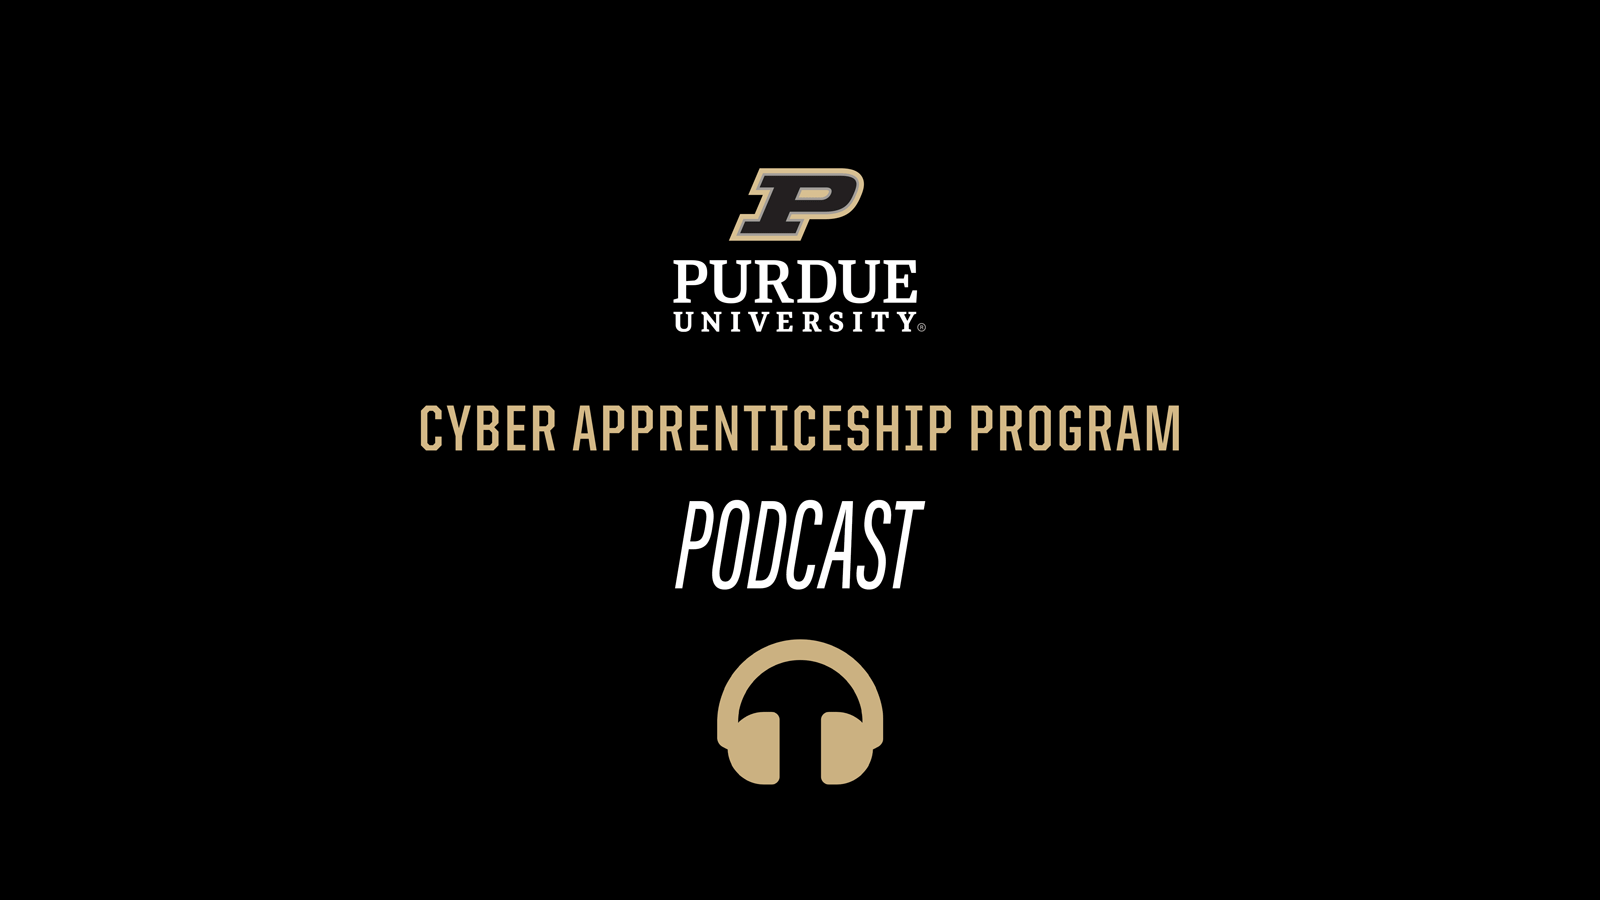 Purdue Cyber Apprenticeship Program Podcast